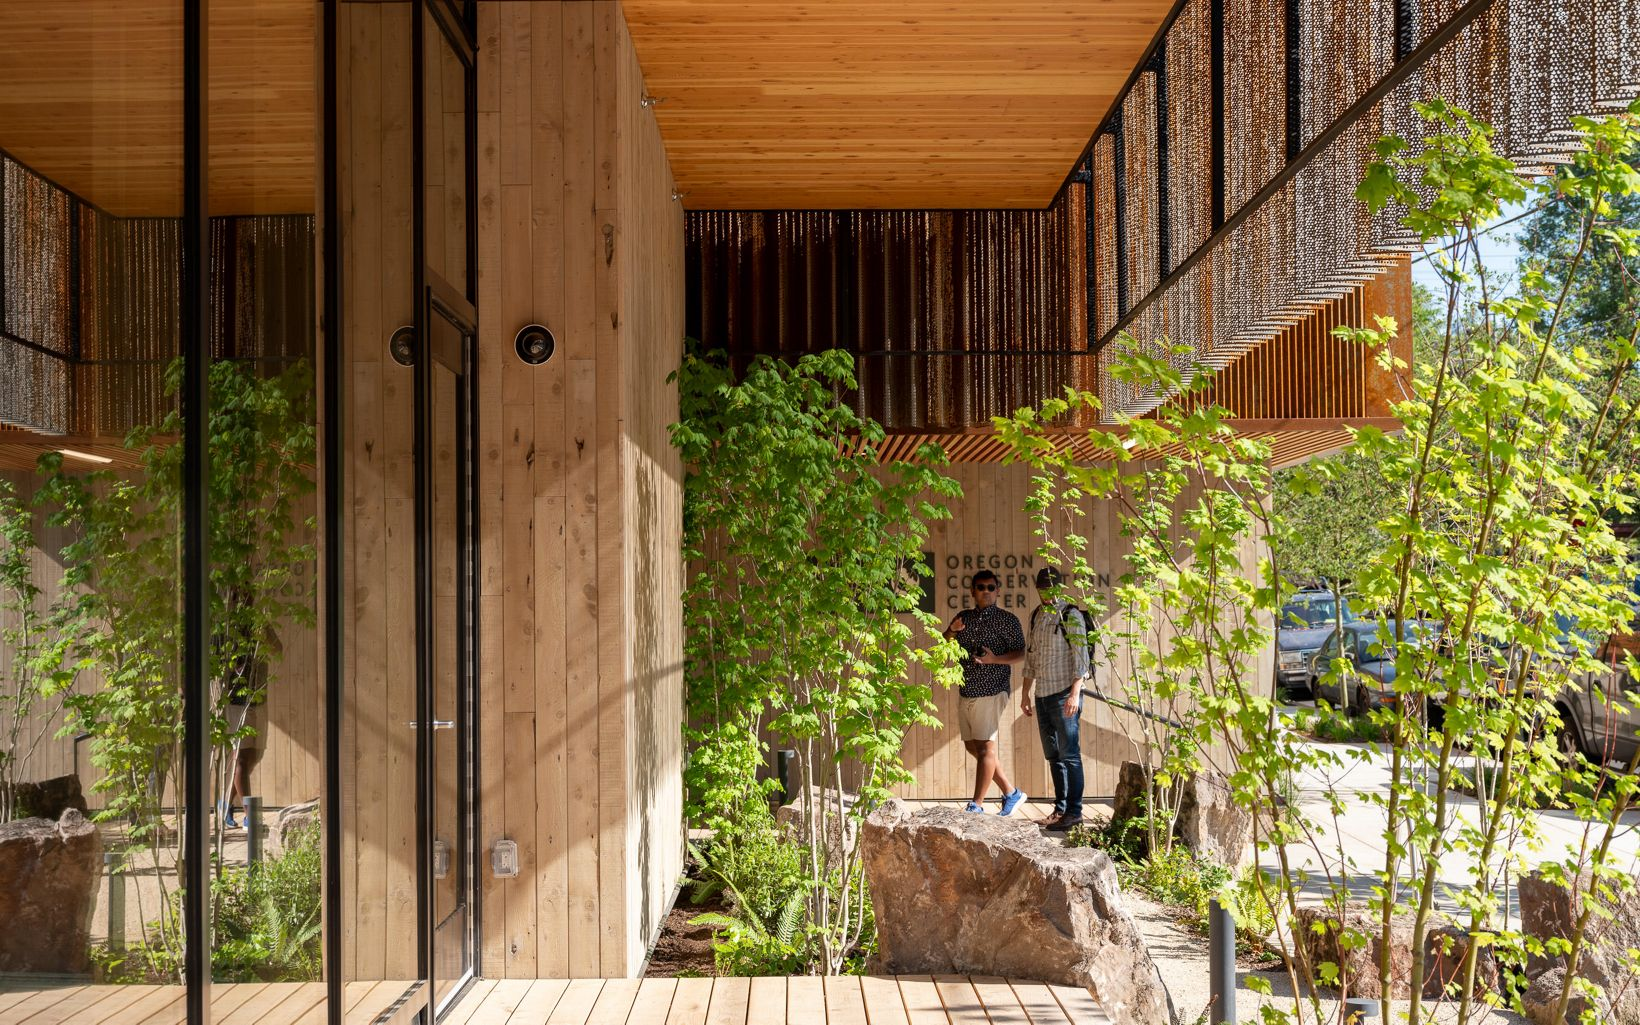 Timber for the project was sustainably sourced from regional restoration projects.